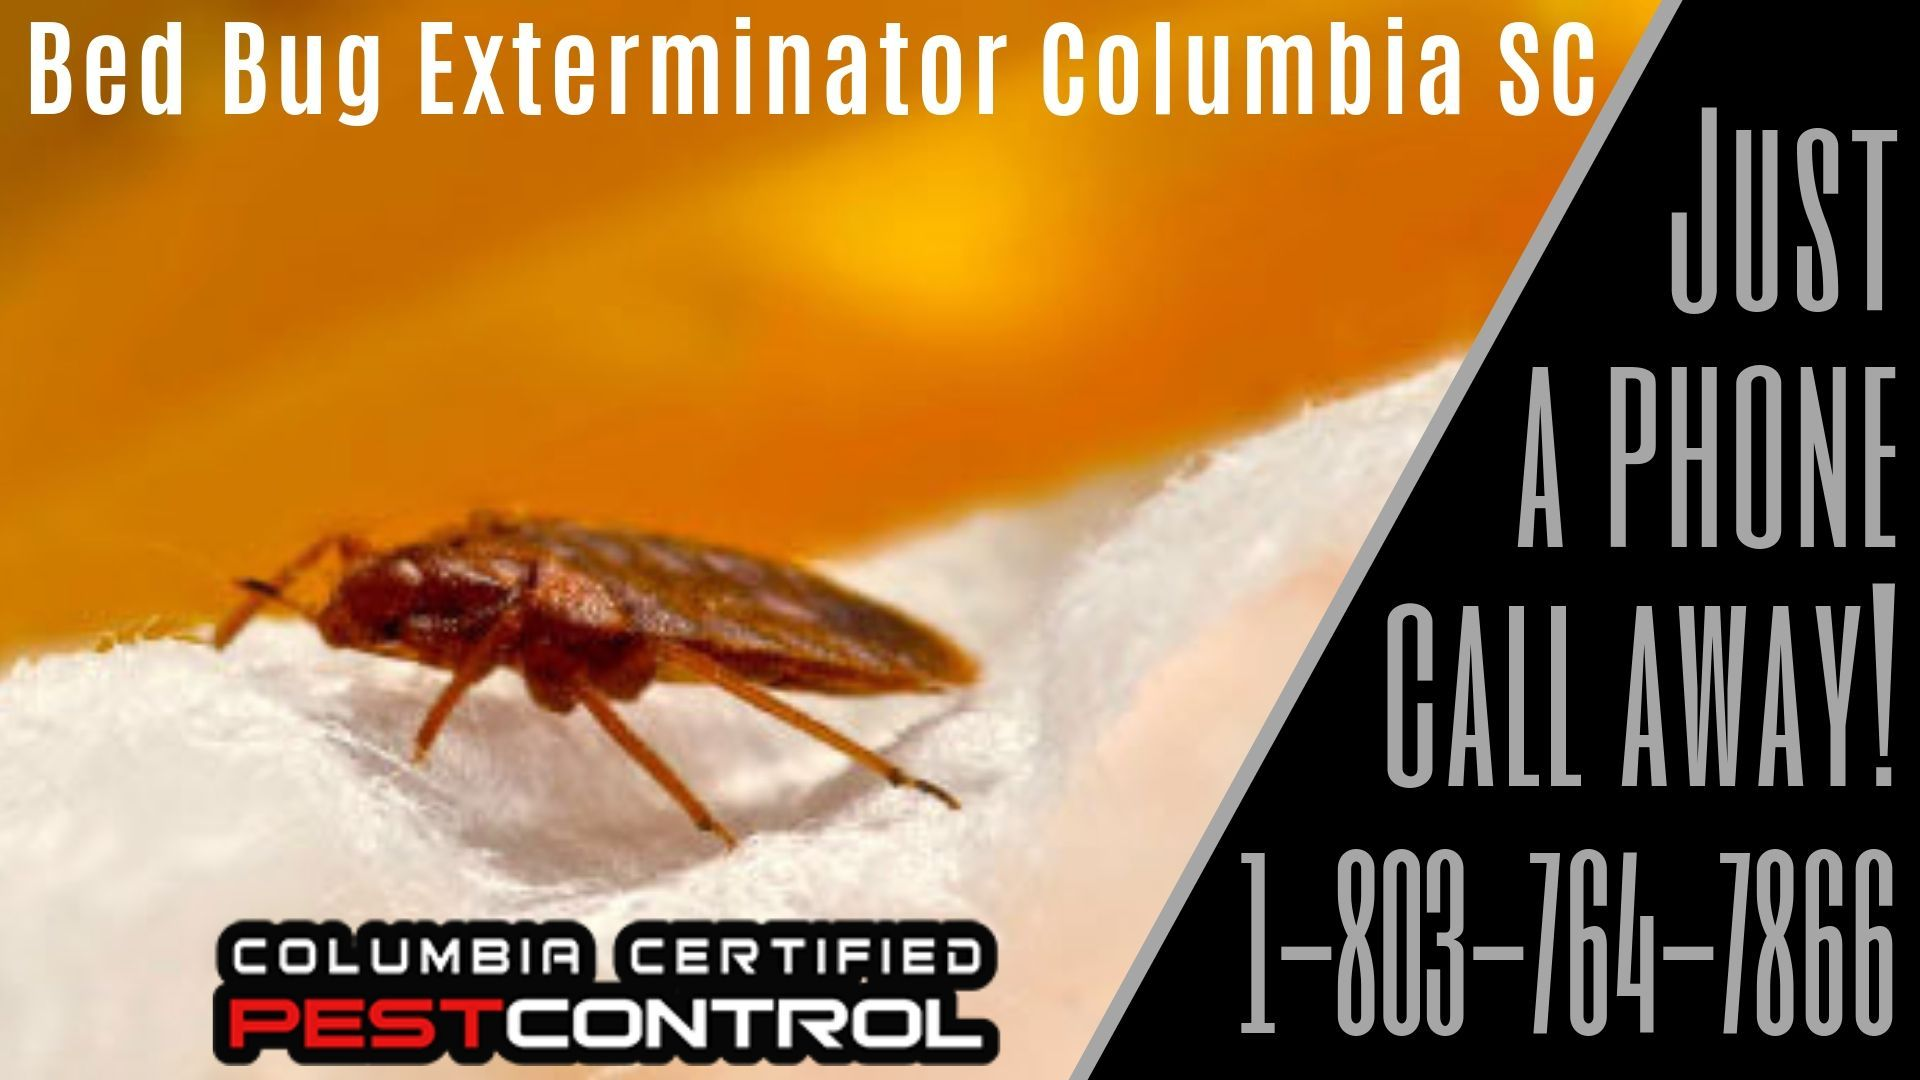 Bed Bug Exterminator Columbia Sc Bed Bugs Bed Bug Extermination Kill Bed Bugs